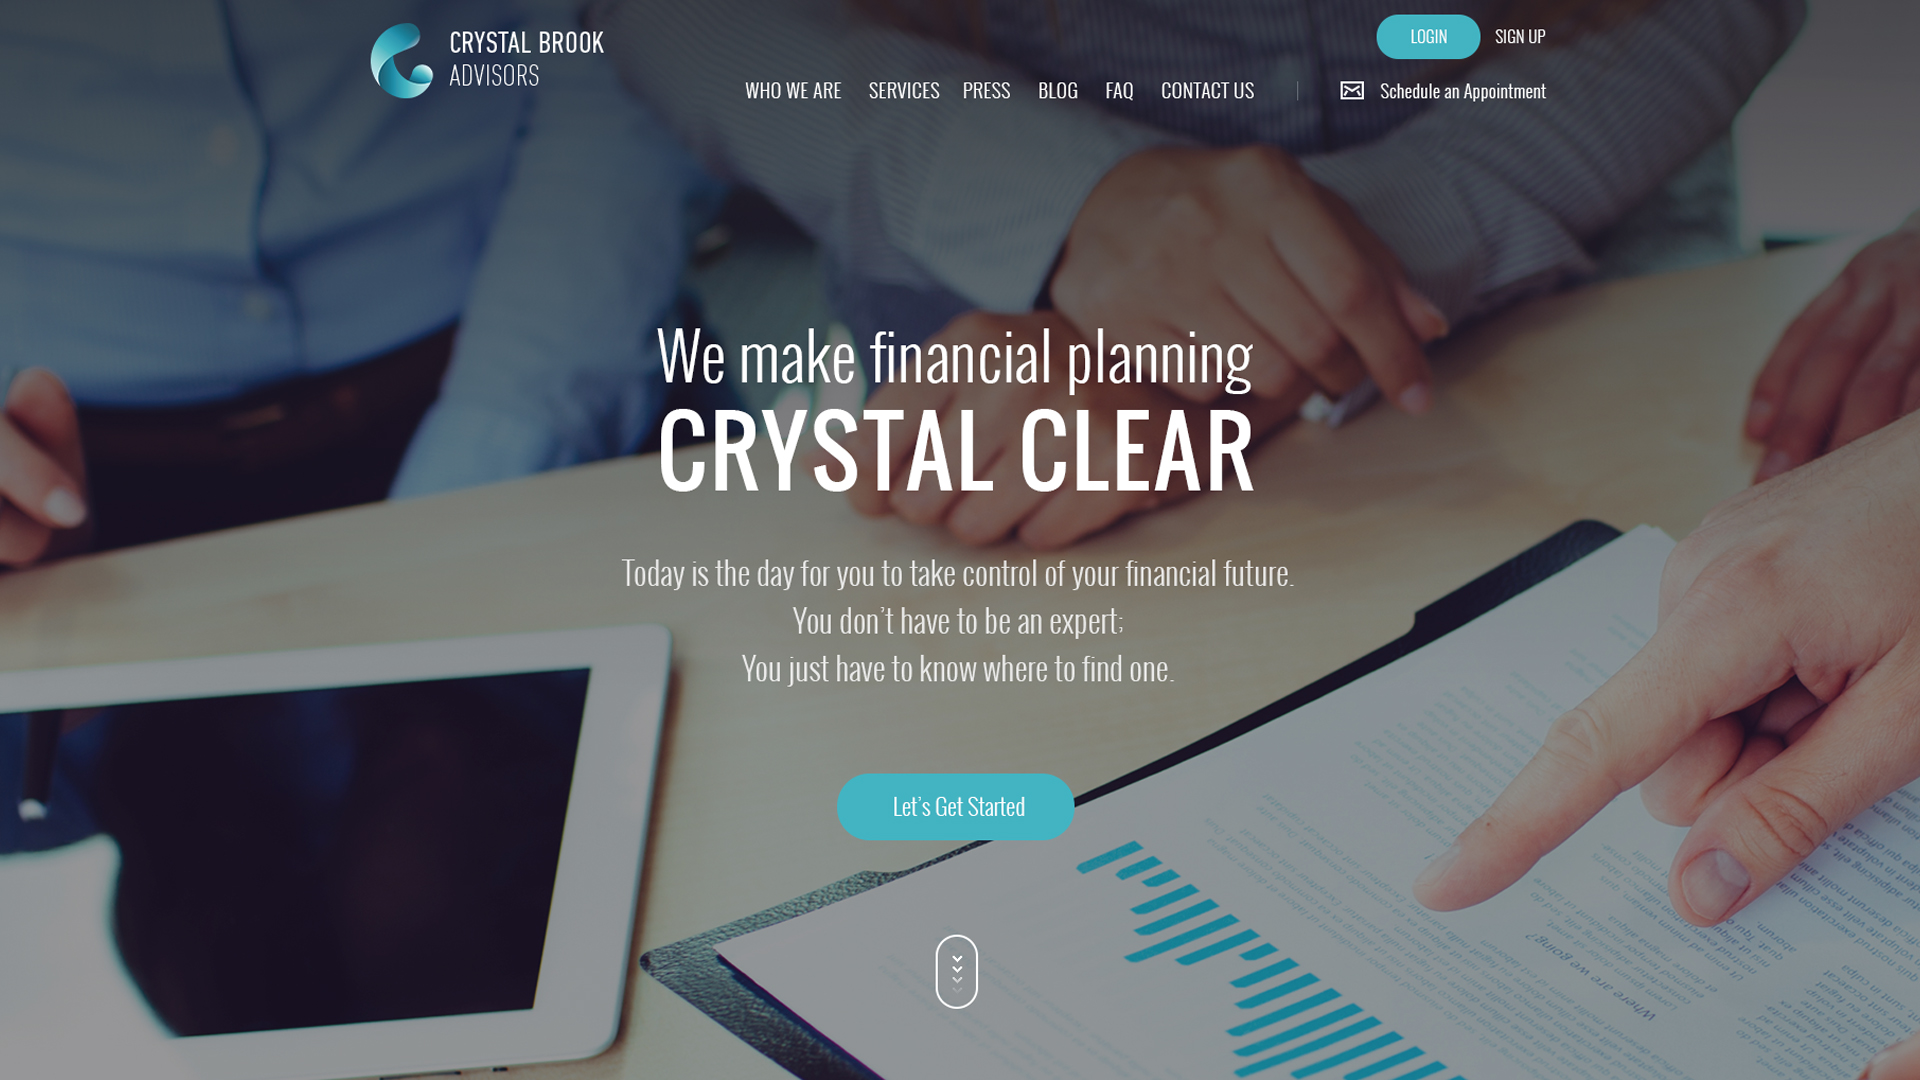 Crystal Brook Advisors Website Design Preview